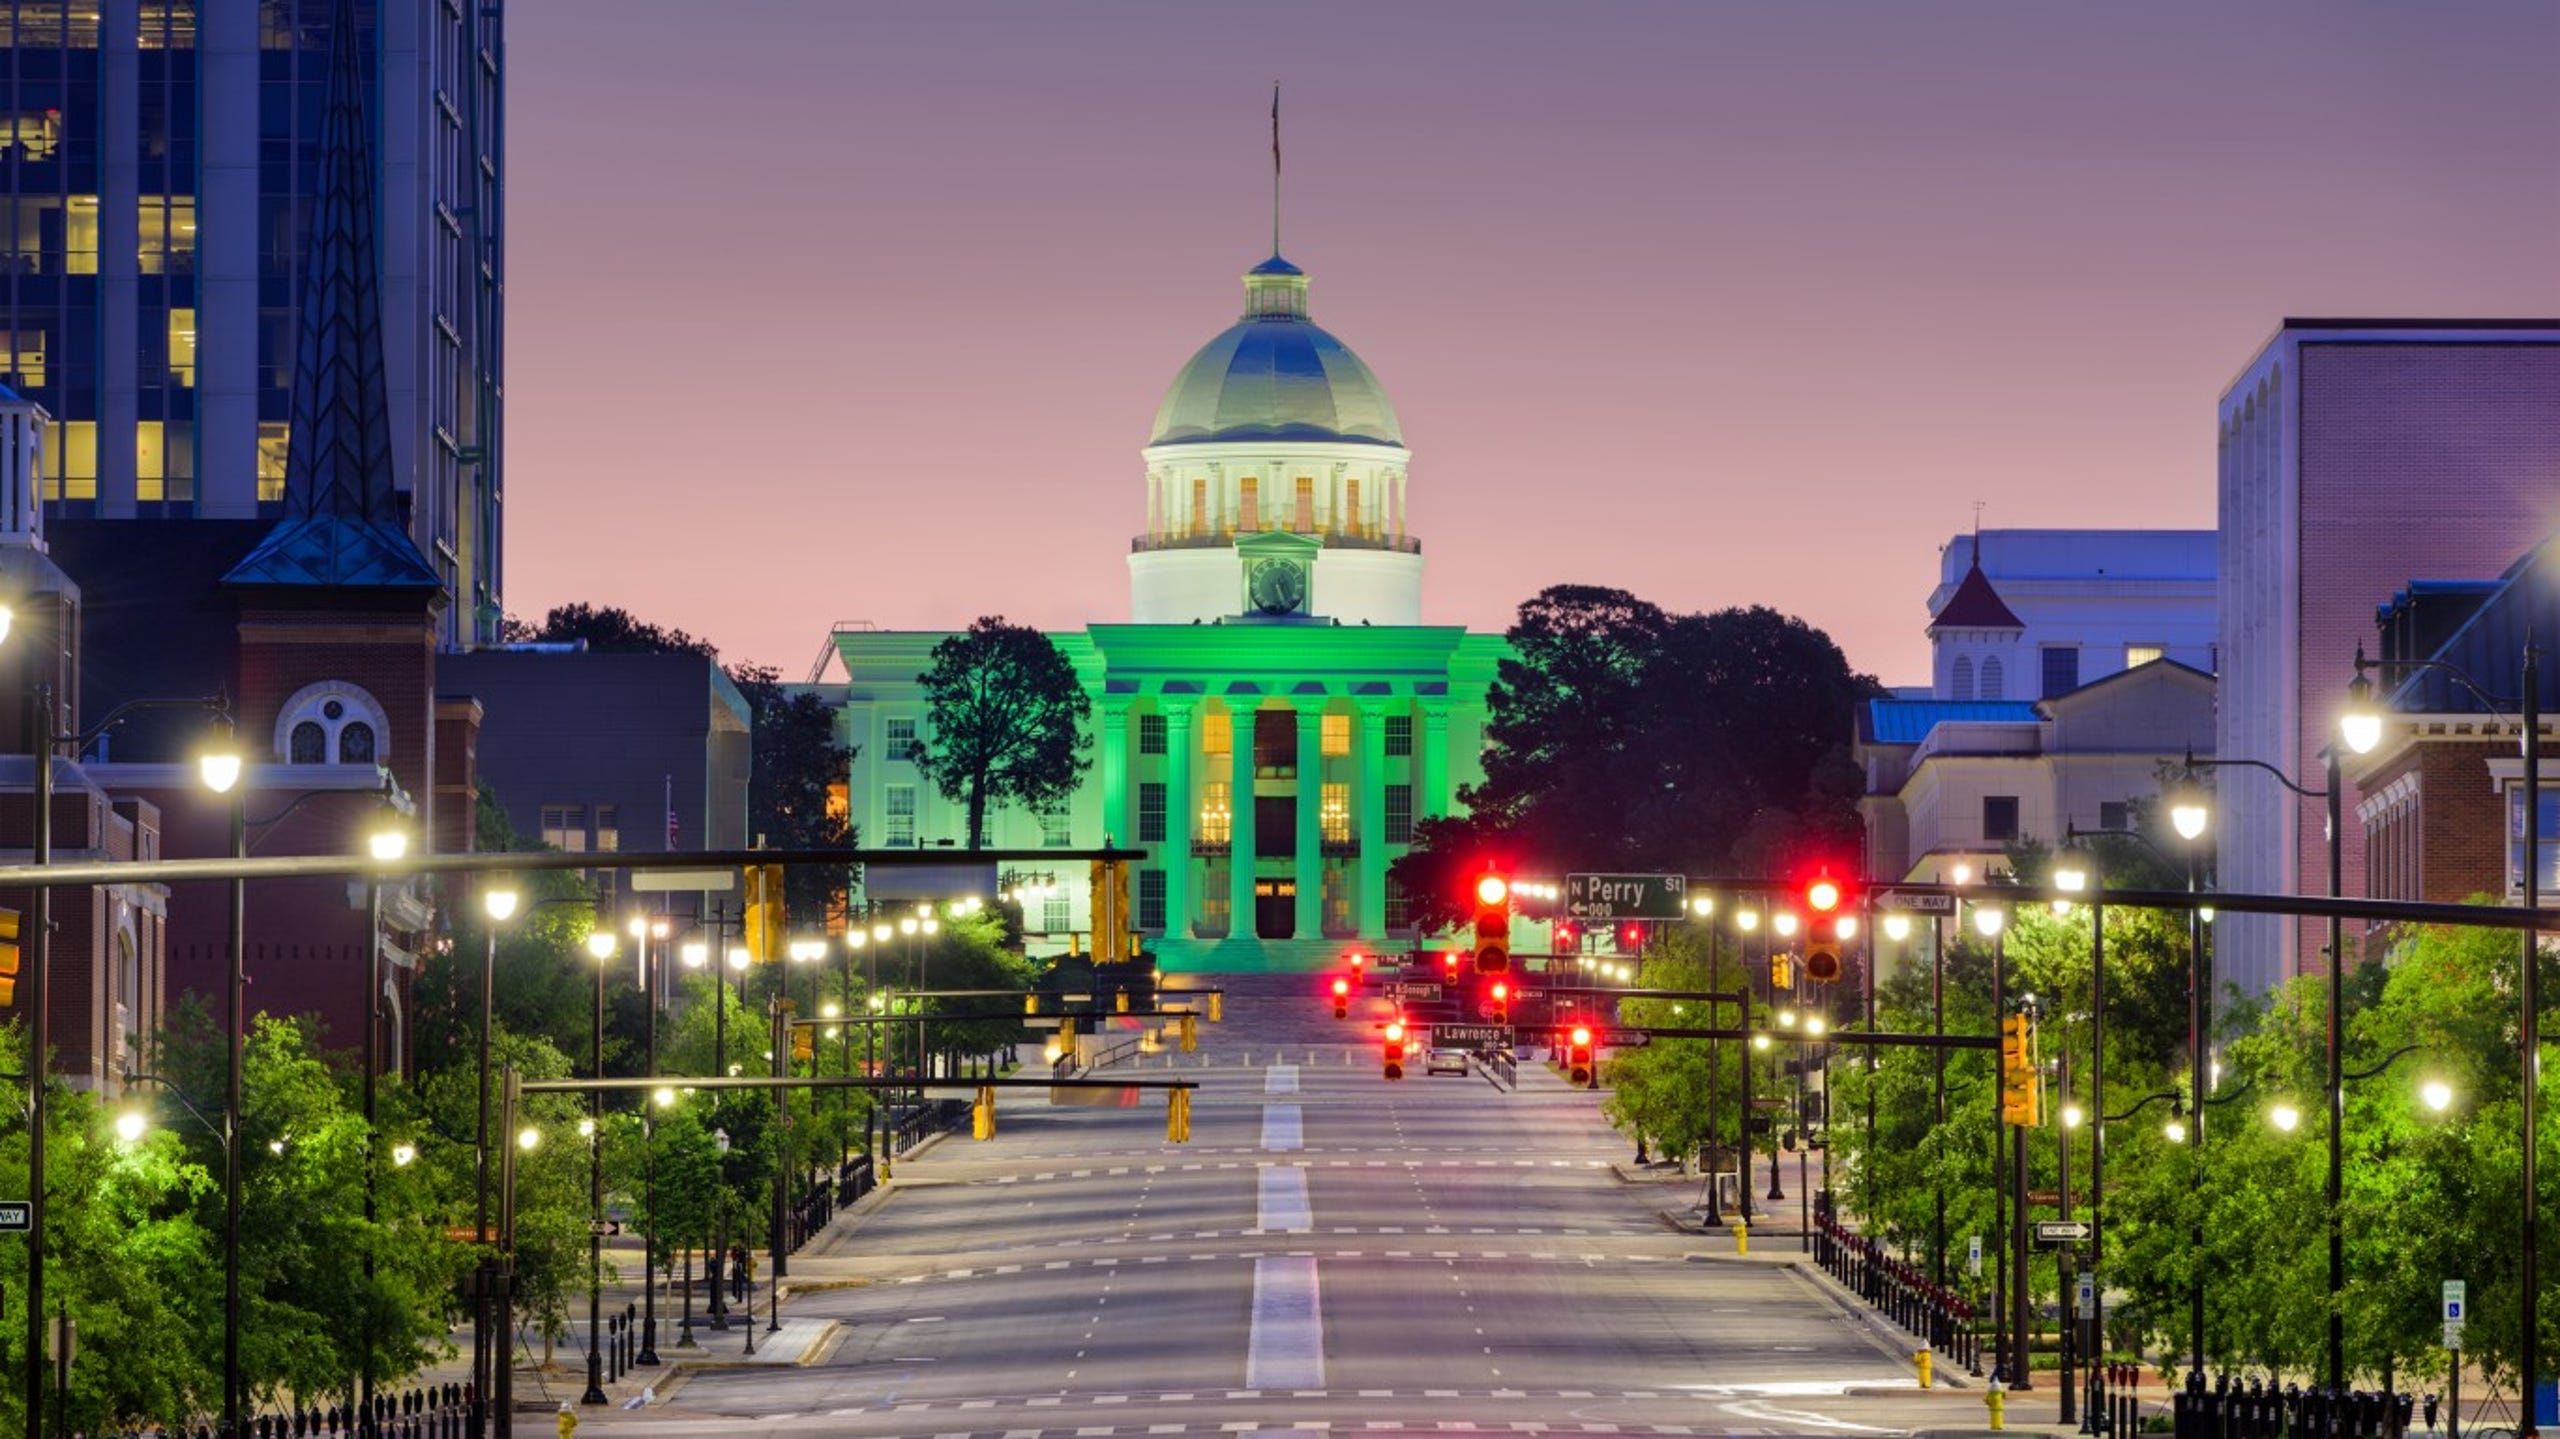 <strong>22. Montgomery, Alabama</strong><br /> <strong>&bull; Preschool enrollment:</strong> 30.7% (lowest 10%)<br /> <strong>&bull; High school graduation rate:</strong> 84.4%<br /> <strong>&bull; Pop. with access to areas for exercise:</strong> 68.5% (lowest 20%)<br /> <strong>&bull; Property crime rate:</strong> 3,532 crimes per 100,000 people (highest 20%)